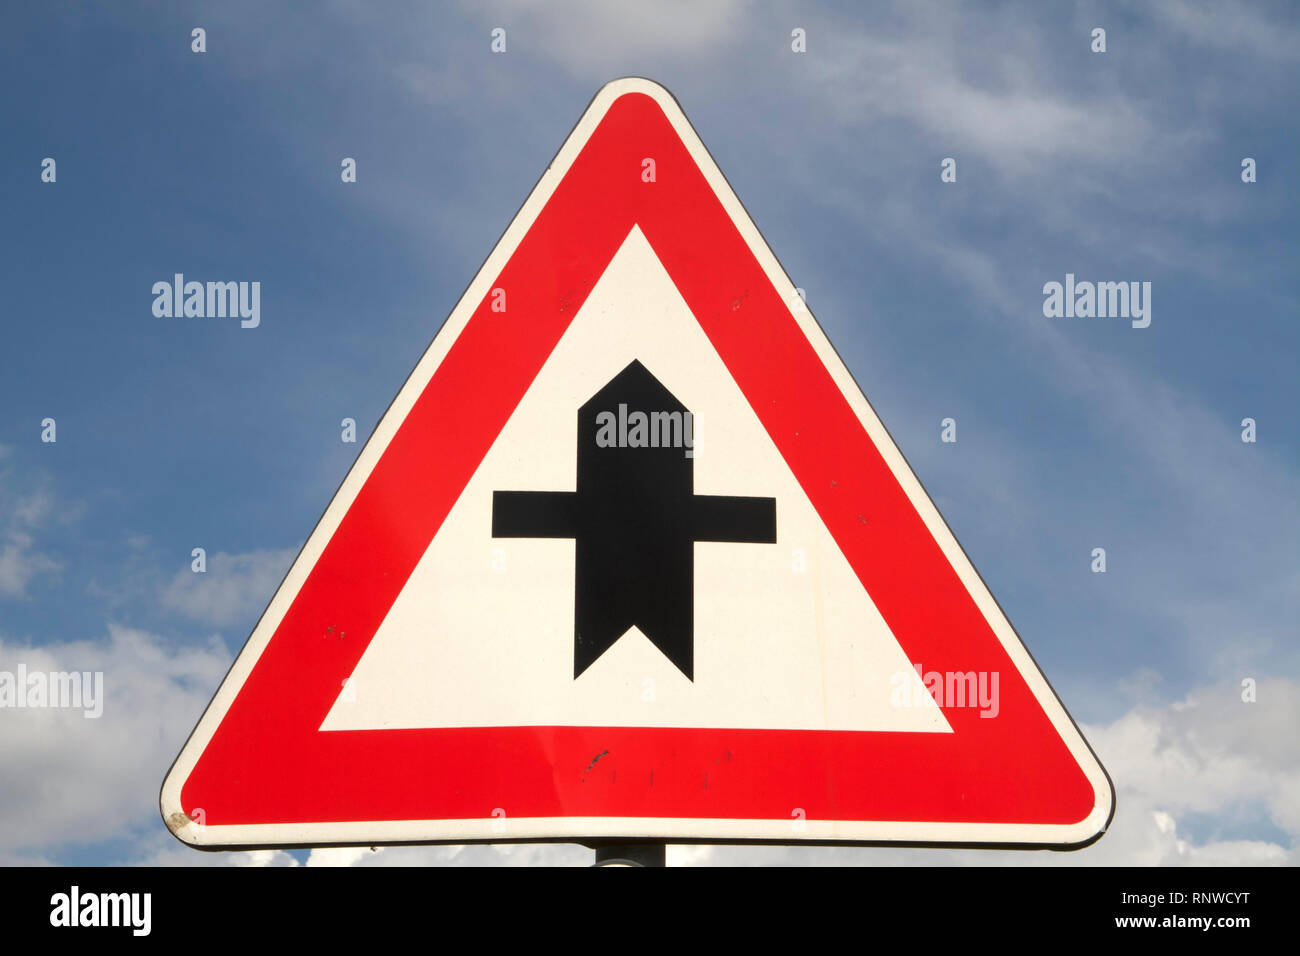 Val di Comino-Traffic sign showing Intersection with right of yeld - Stock Image